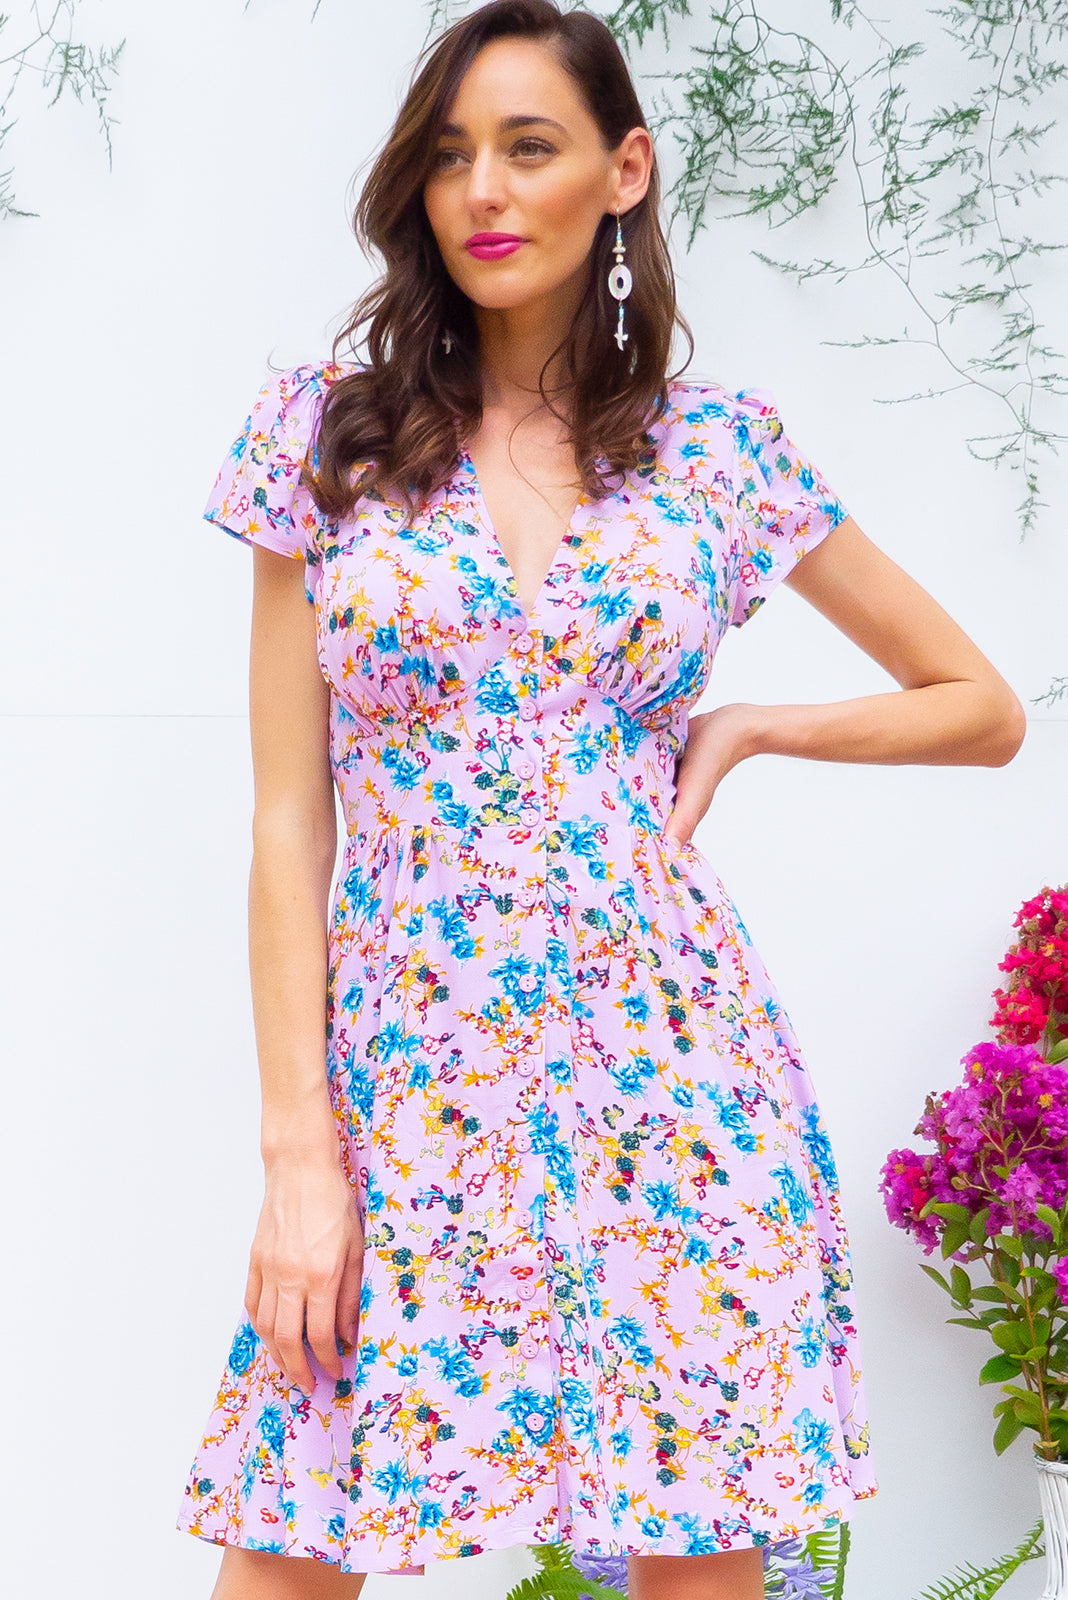 Peggy Portia Mini dress features a vintage inspired fitted basque waist and elasticated waist with a cap sleeve, deep v neck and a functional button front the fabric is a soft woven rayon in a fresh pink purple floral print